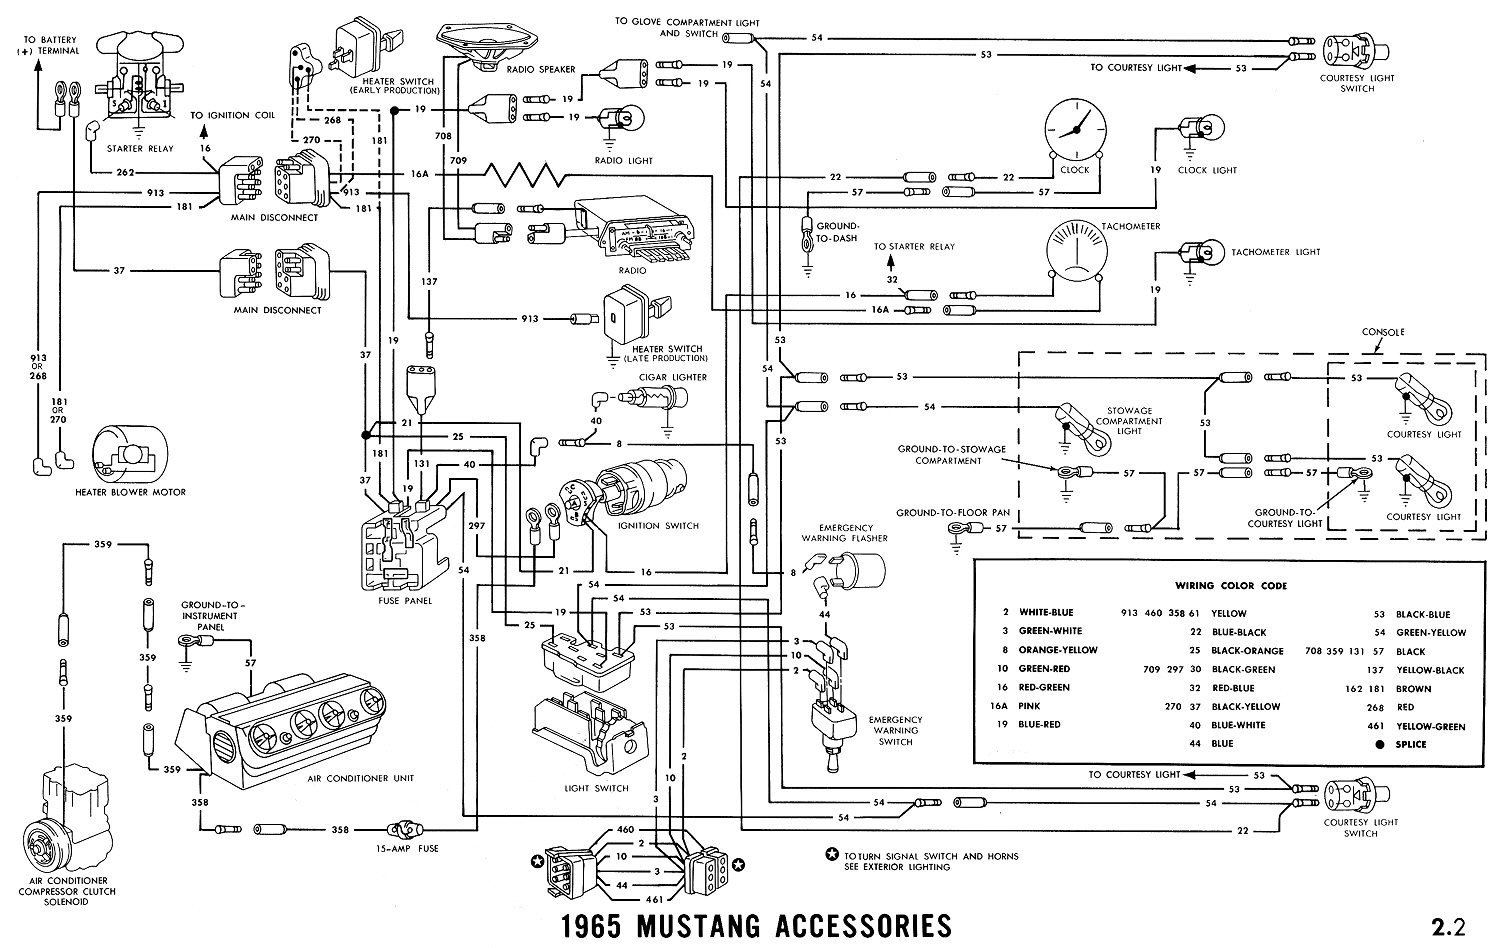 1965i 1965 mustang wiring diagrams average joe restoration 1967 mustang wiring diagram at alyssarenee.co